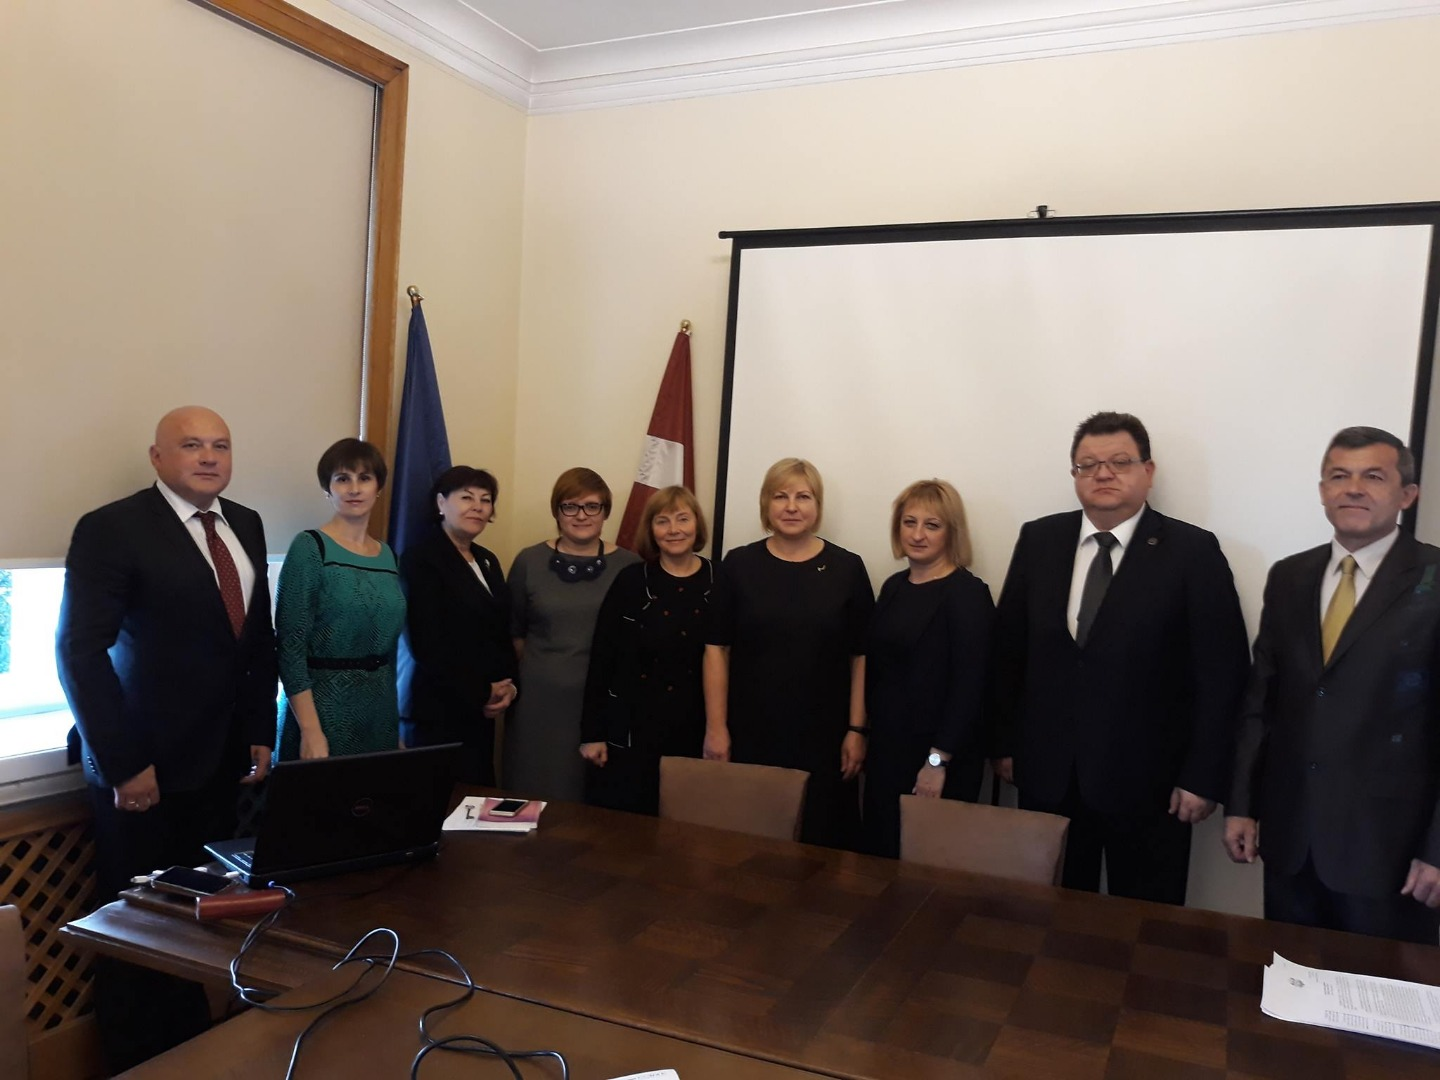 """25.09.2018. The judges of the Supreme Court of Ukraine came to Latvia in the framework of the project """"Strengthening the institutional capacity of the Supreme Court of Ukraine in the field of human rights protection at the national level"""". The visit was arranged by judge Jautrite Briede, who is currently working as a project expert in the Supreme Court of Ukraine. Guests met with Ivars Bickovics, the Chief Justice of the Supreme Court, as well as with judges and legal research counsels from all departments in order to get acquainted with the work experience of the Supreme Court of Latvia, paying particular attention to the so-called """"cassation filters""""."""